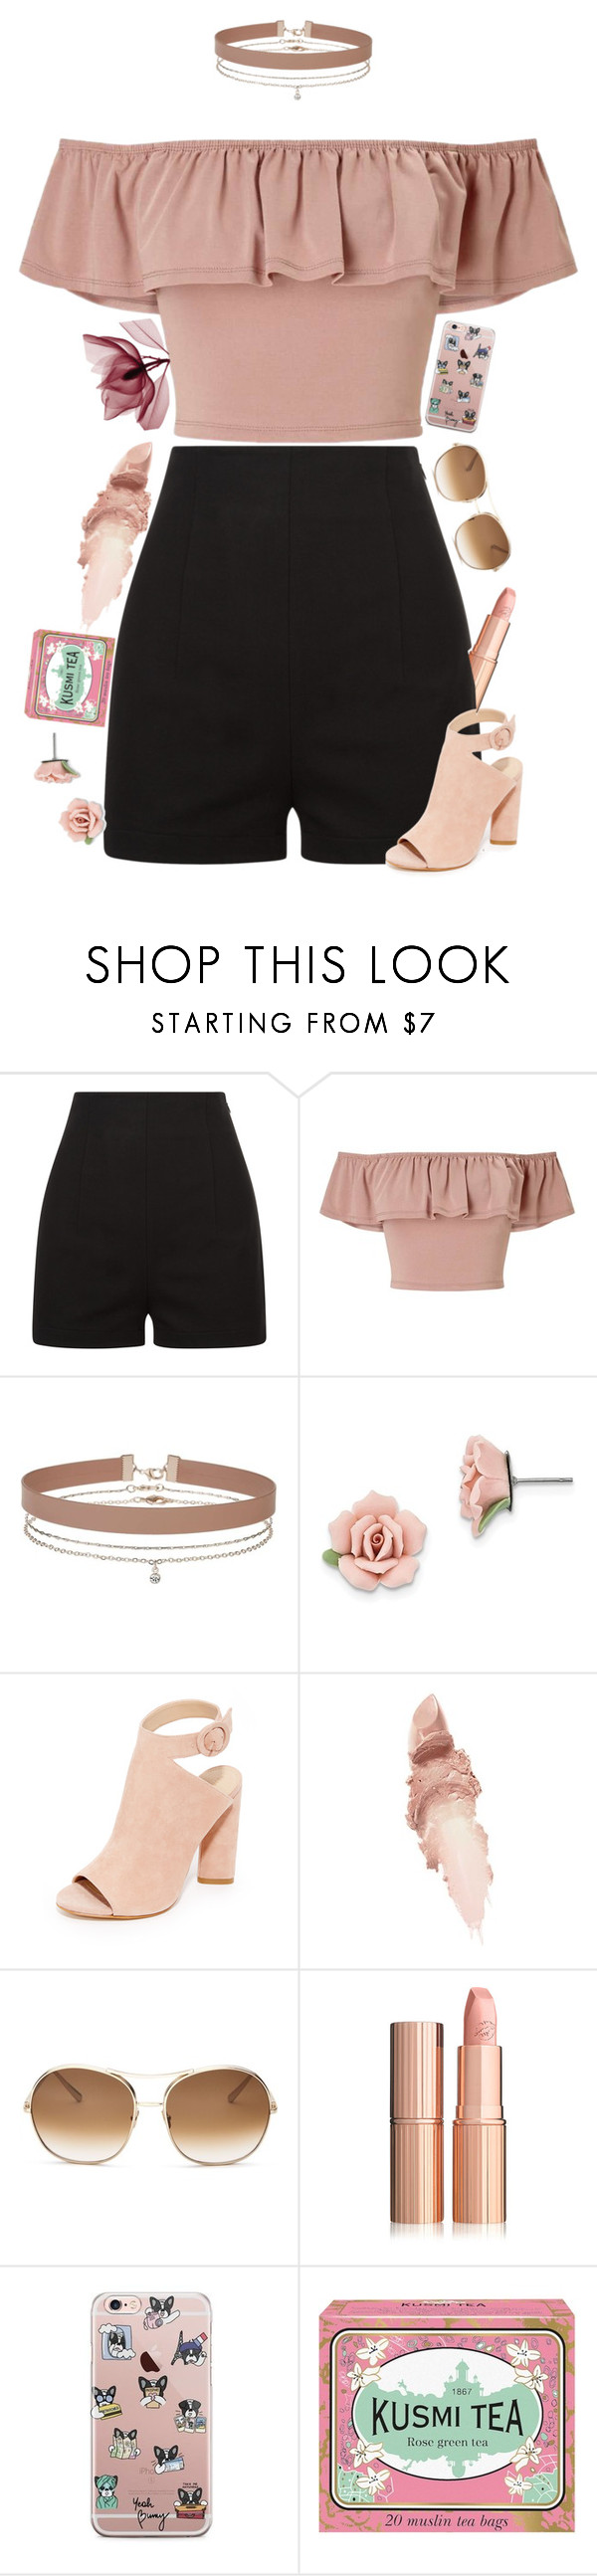 """""""Untitled #589"""" by nblankenship ❤ liked on Polyvore featuring Miss Selfridge, 1928, Kendall + Kylie, Maybelline, Chloé and Kusmi Tea"""